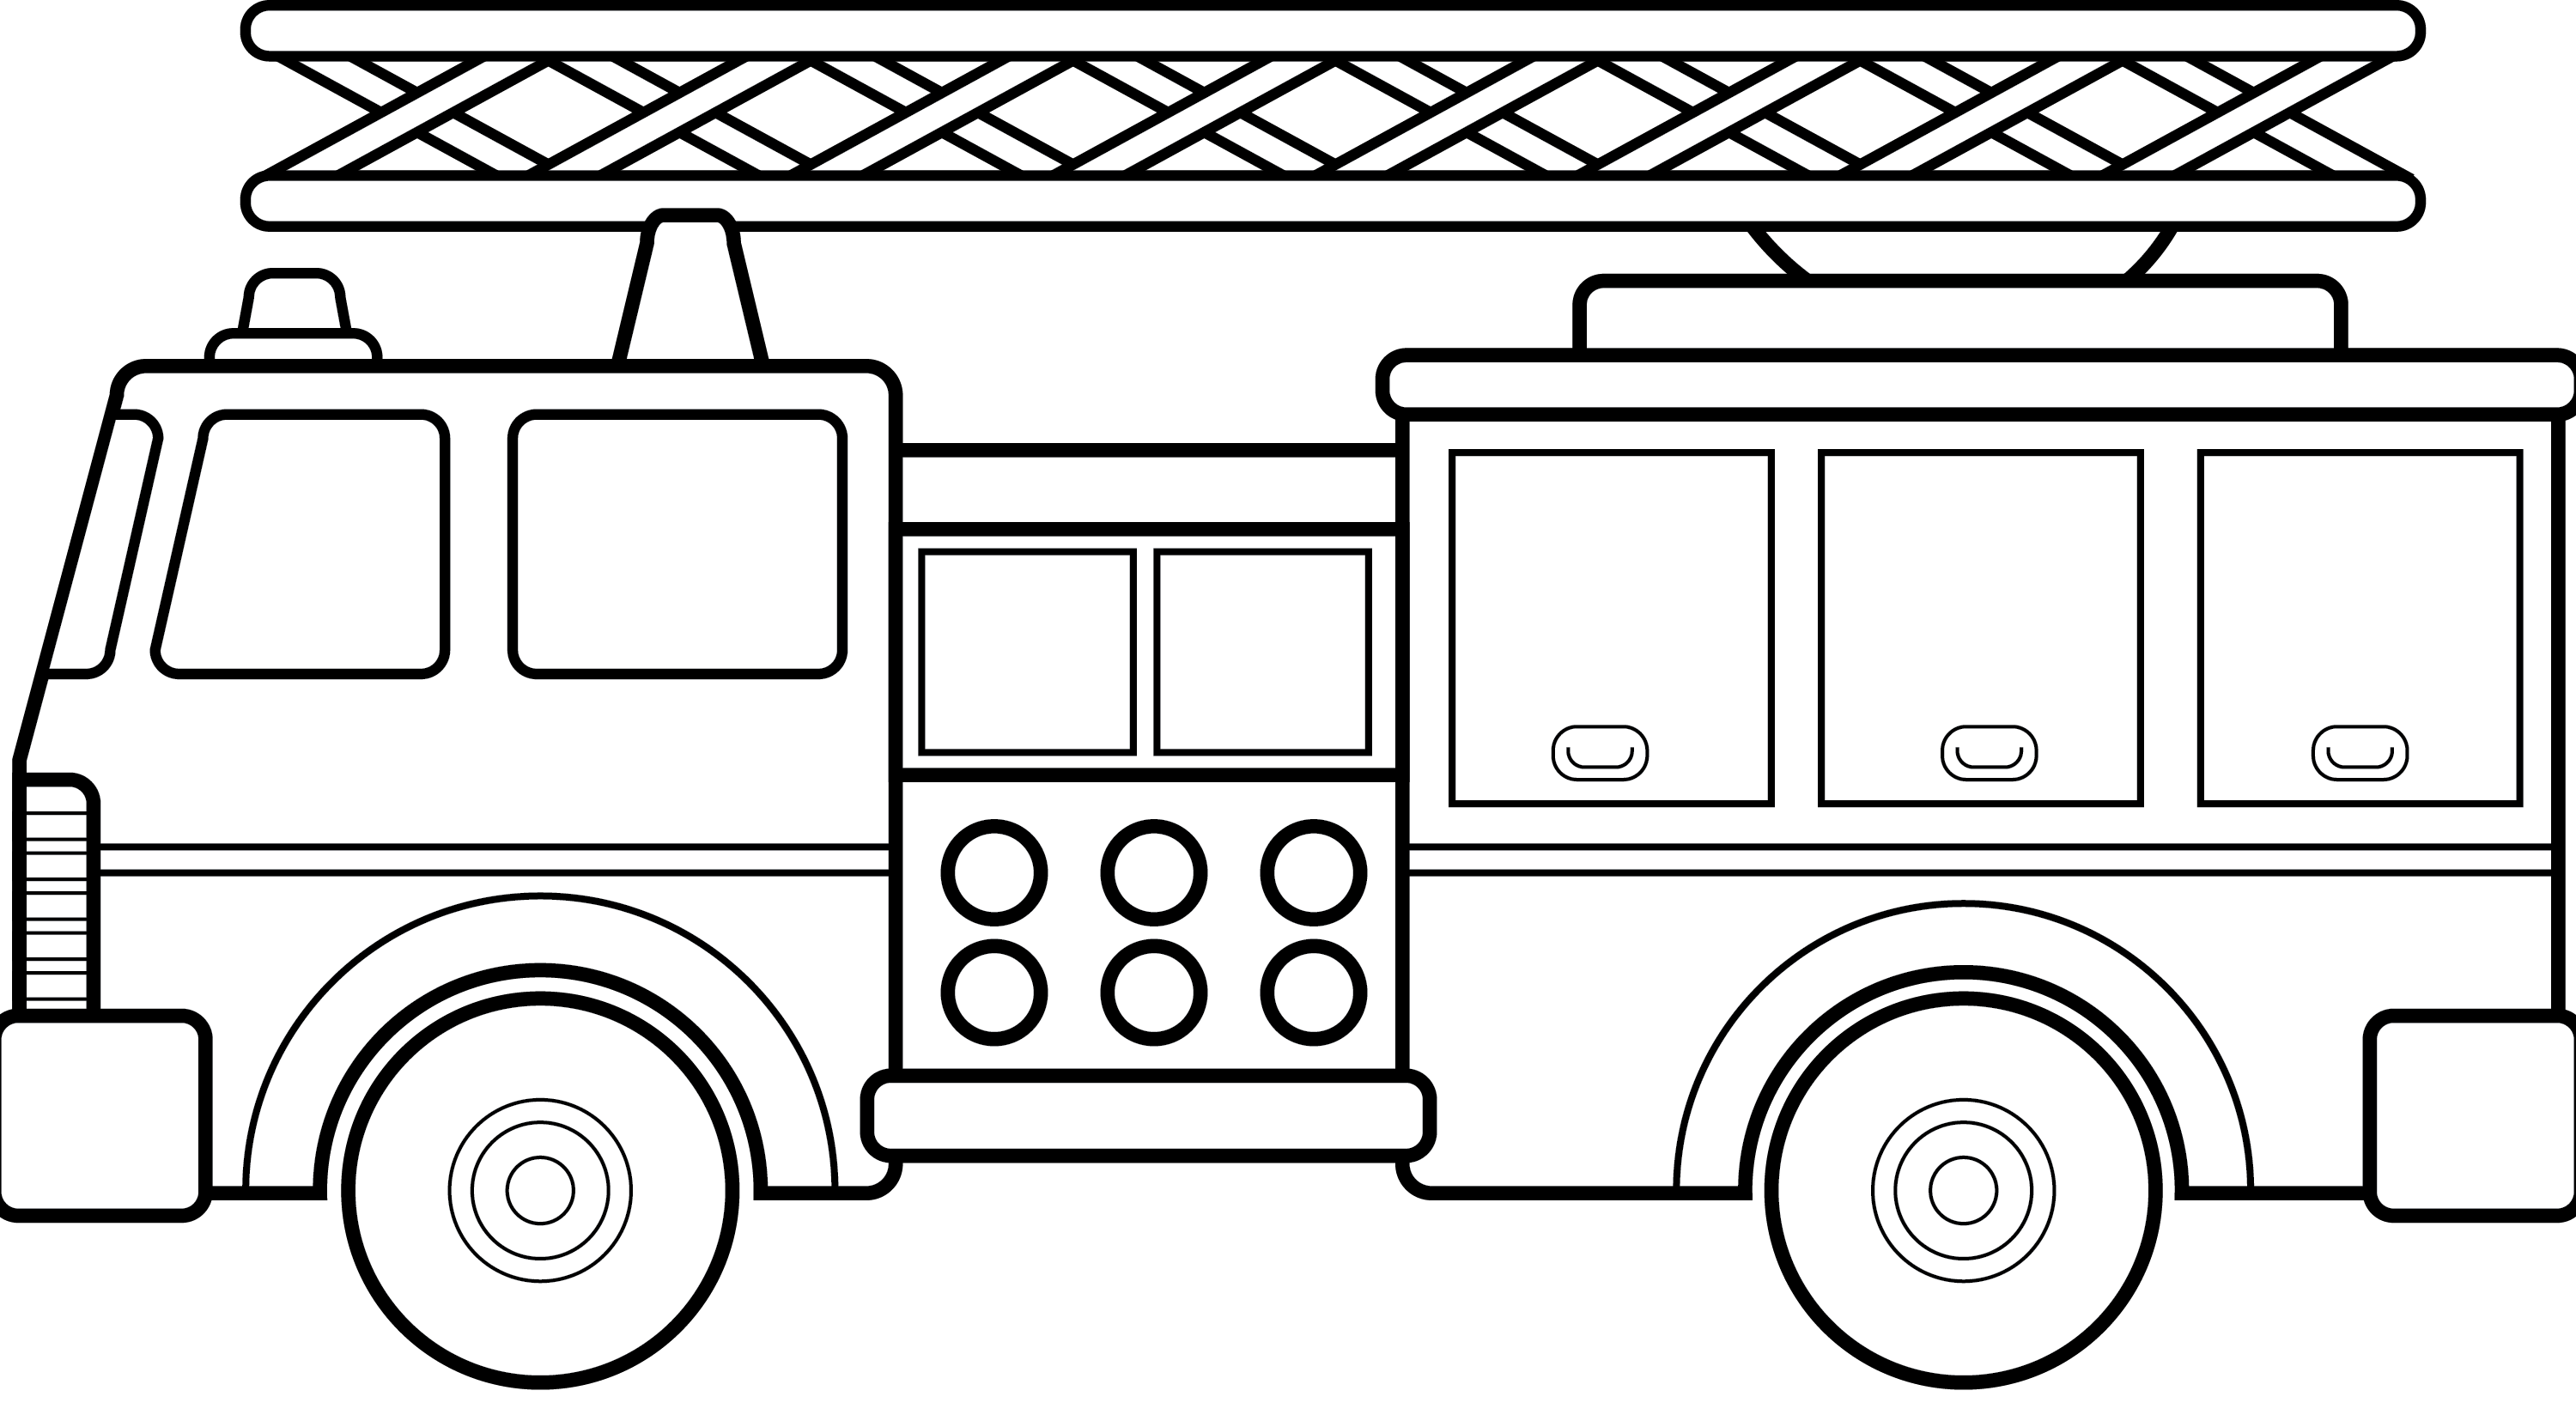 Fire truck clipart black white graphic royalty free stock Firetruck fire truck clip art black and white use these free images ... graphic royalty free stock